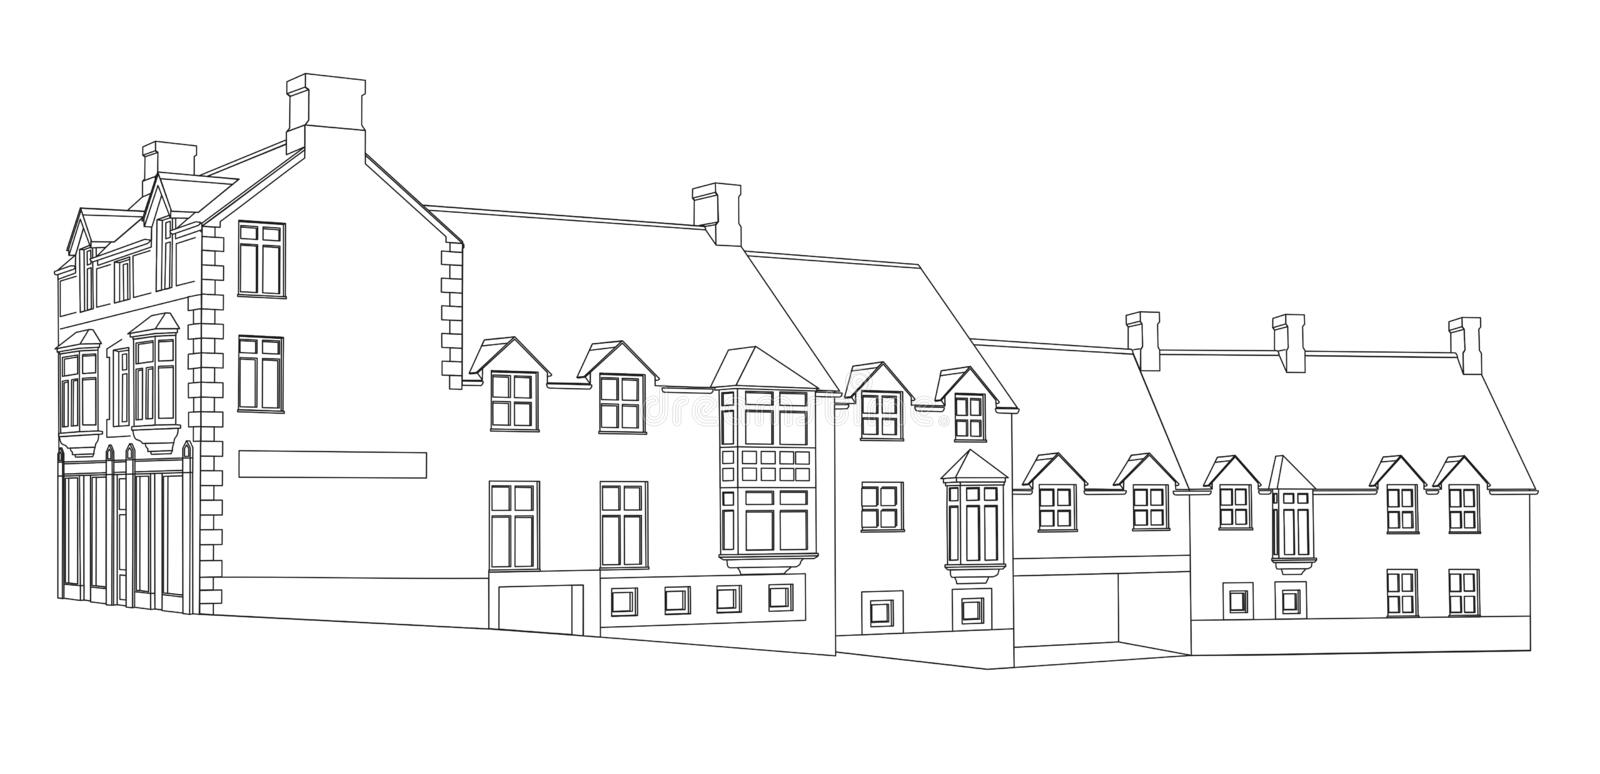 House Plan View 1 Royalty Free Stock Photography